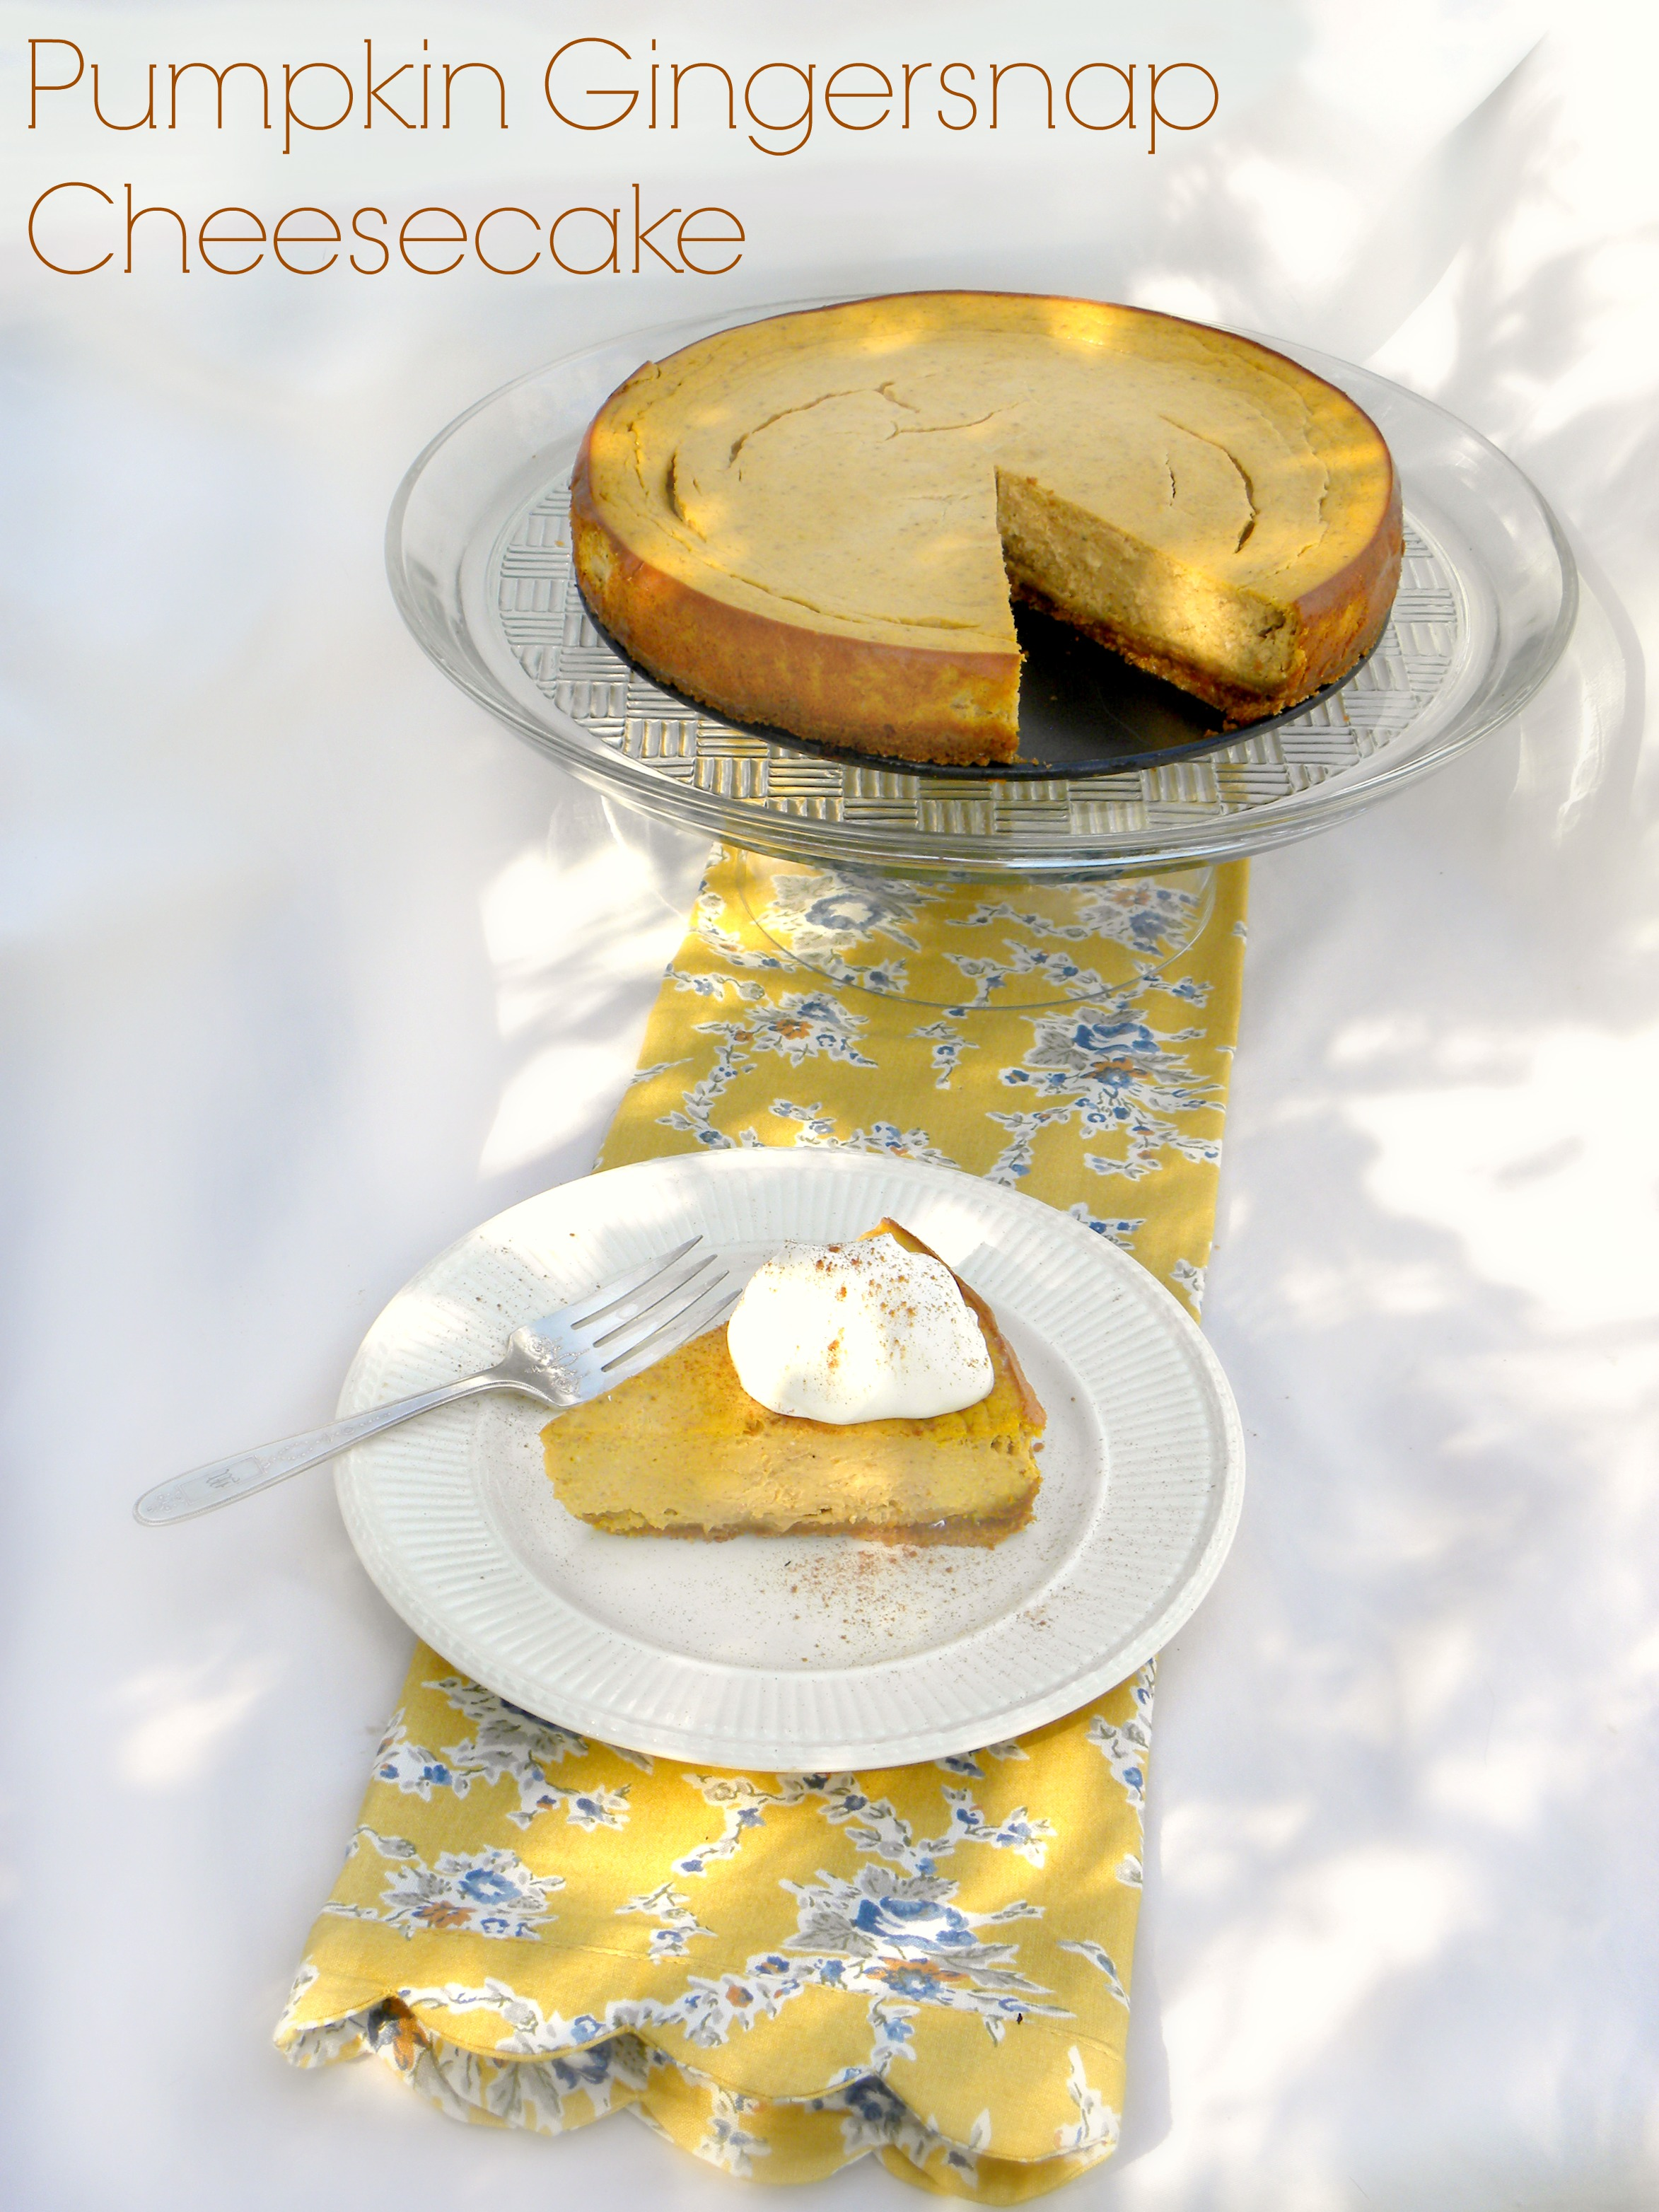 How about some Pumpkin Gingersnap Cheesececake? Easy and delish!  Perfect way to impress your Thanksgiving guests. #thanksgivingrecipes #pumpkinpie